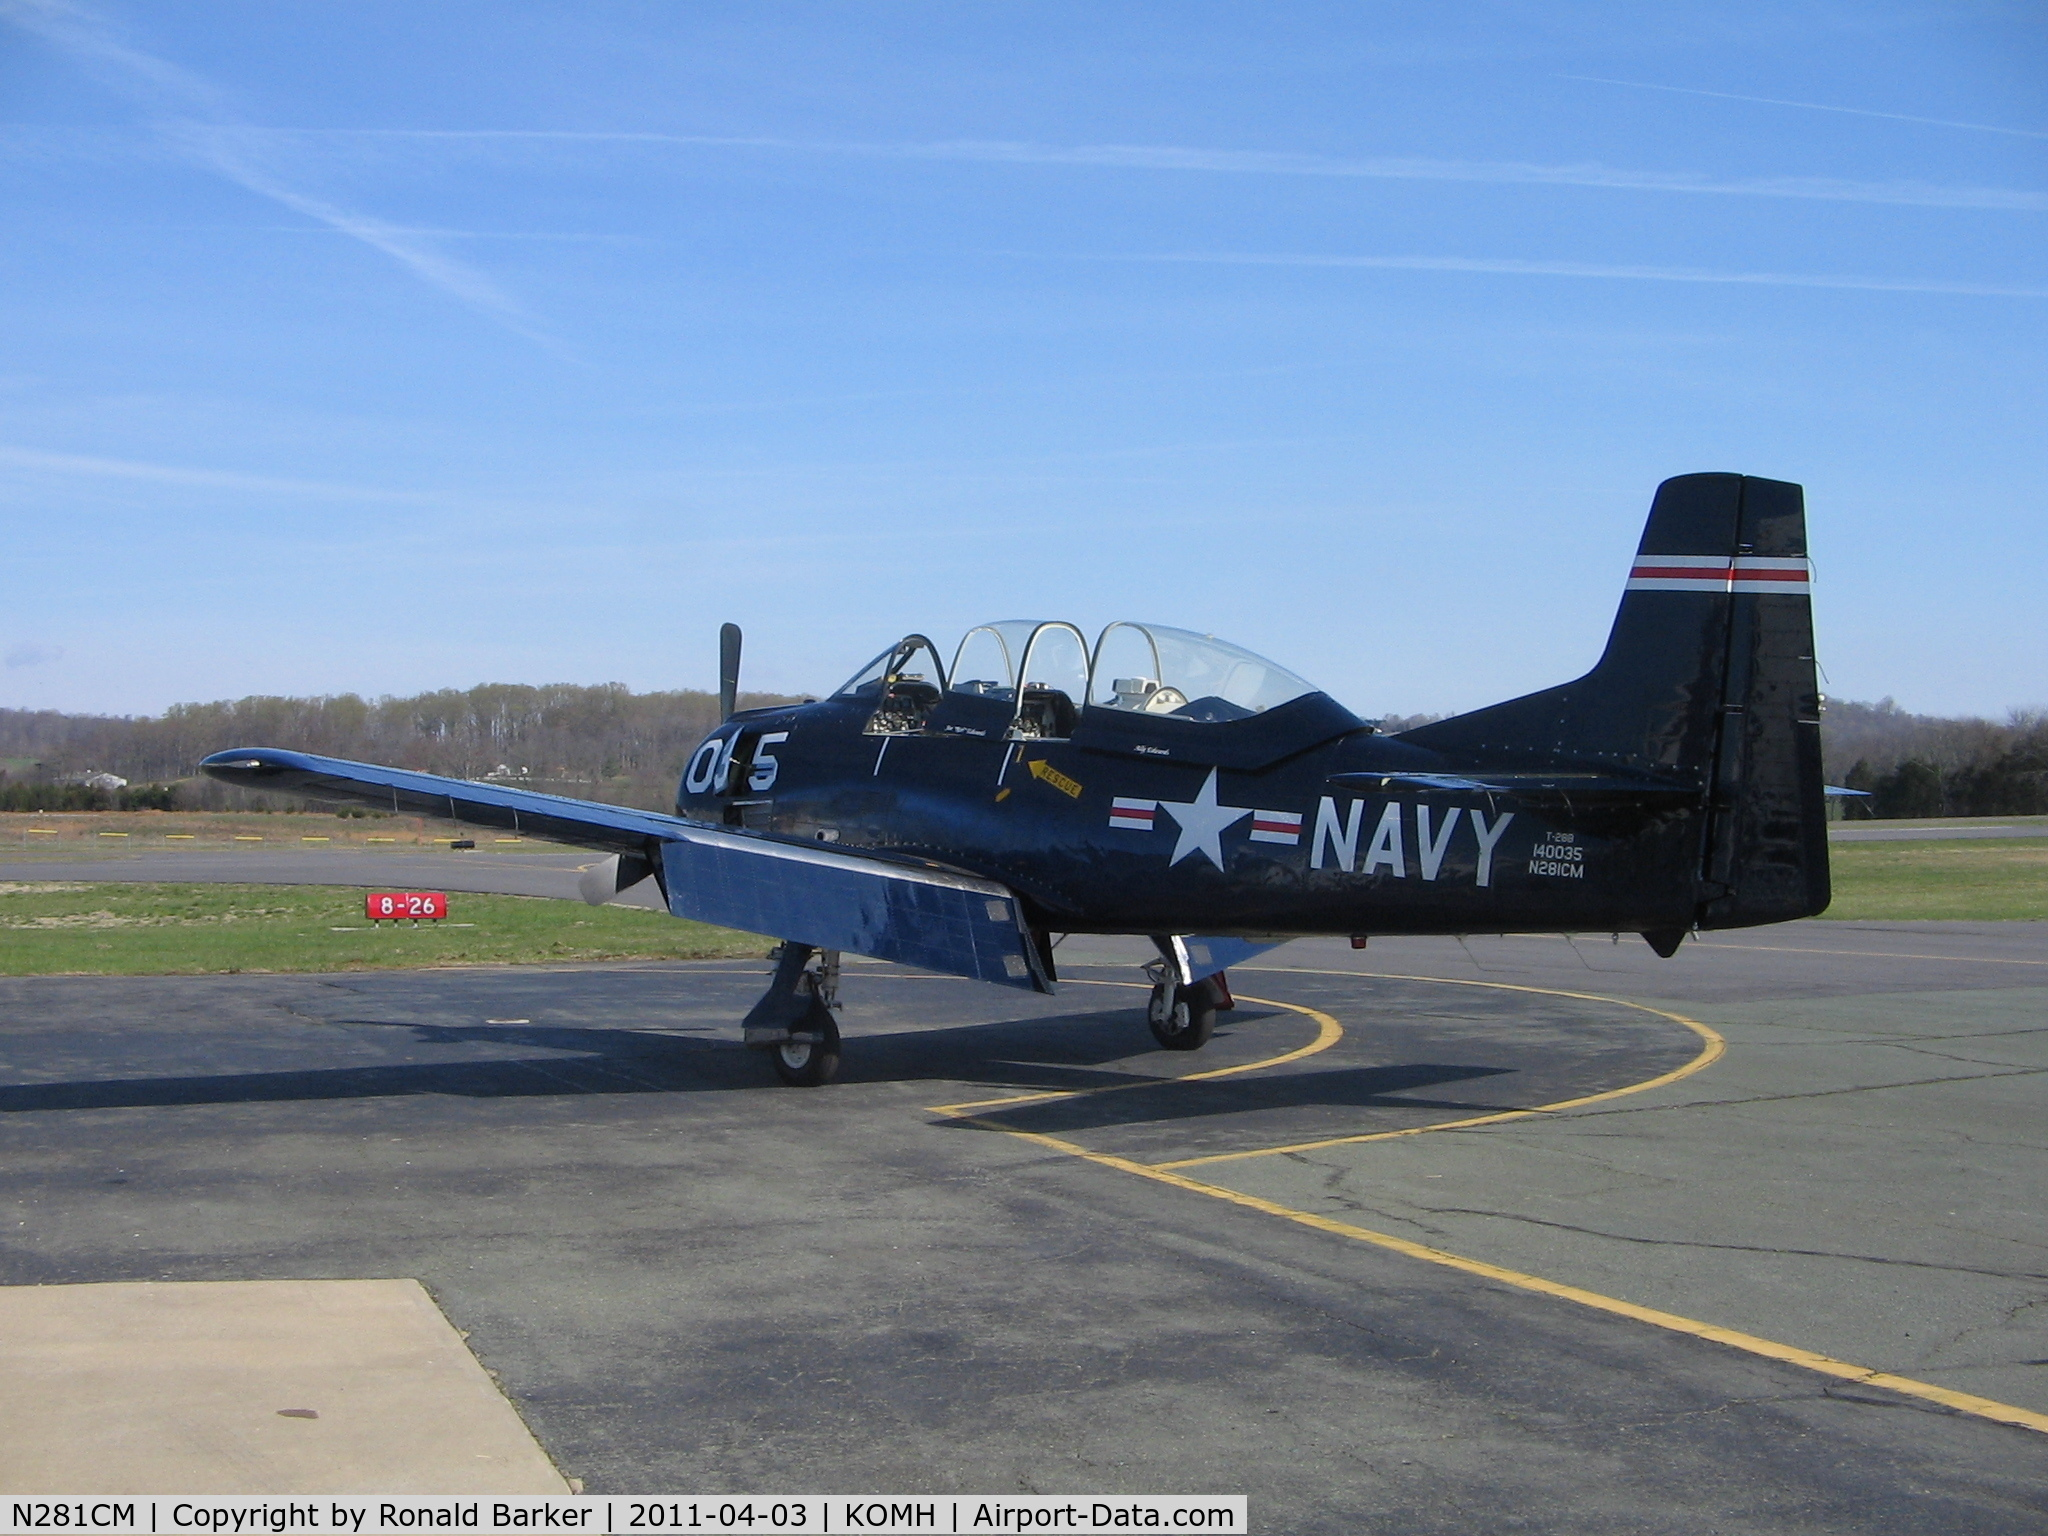 N281CM, 1955 North American T-28B Trojan C/N 219-34, Orange County Airport, VA